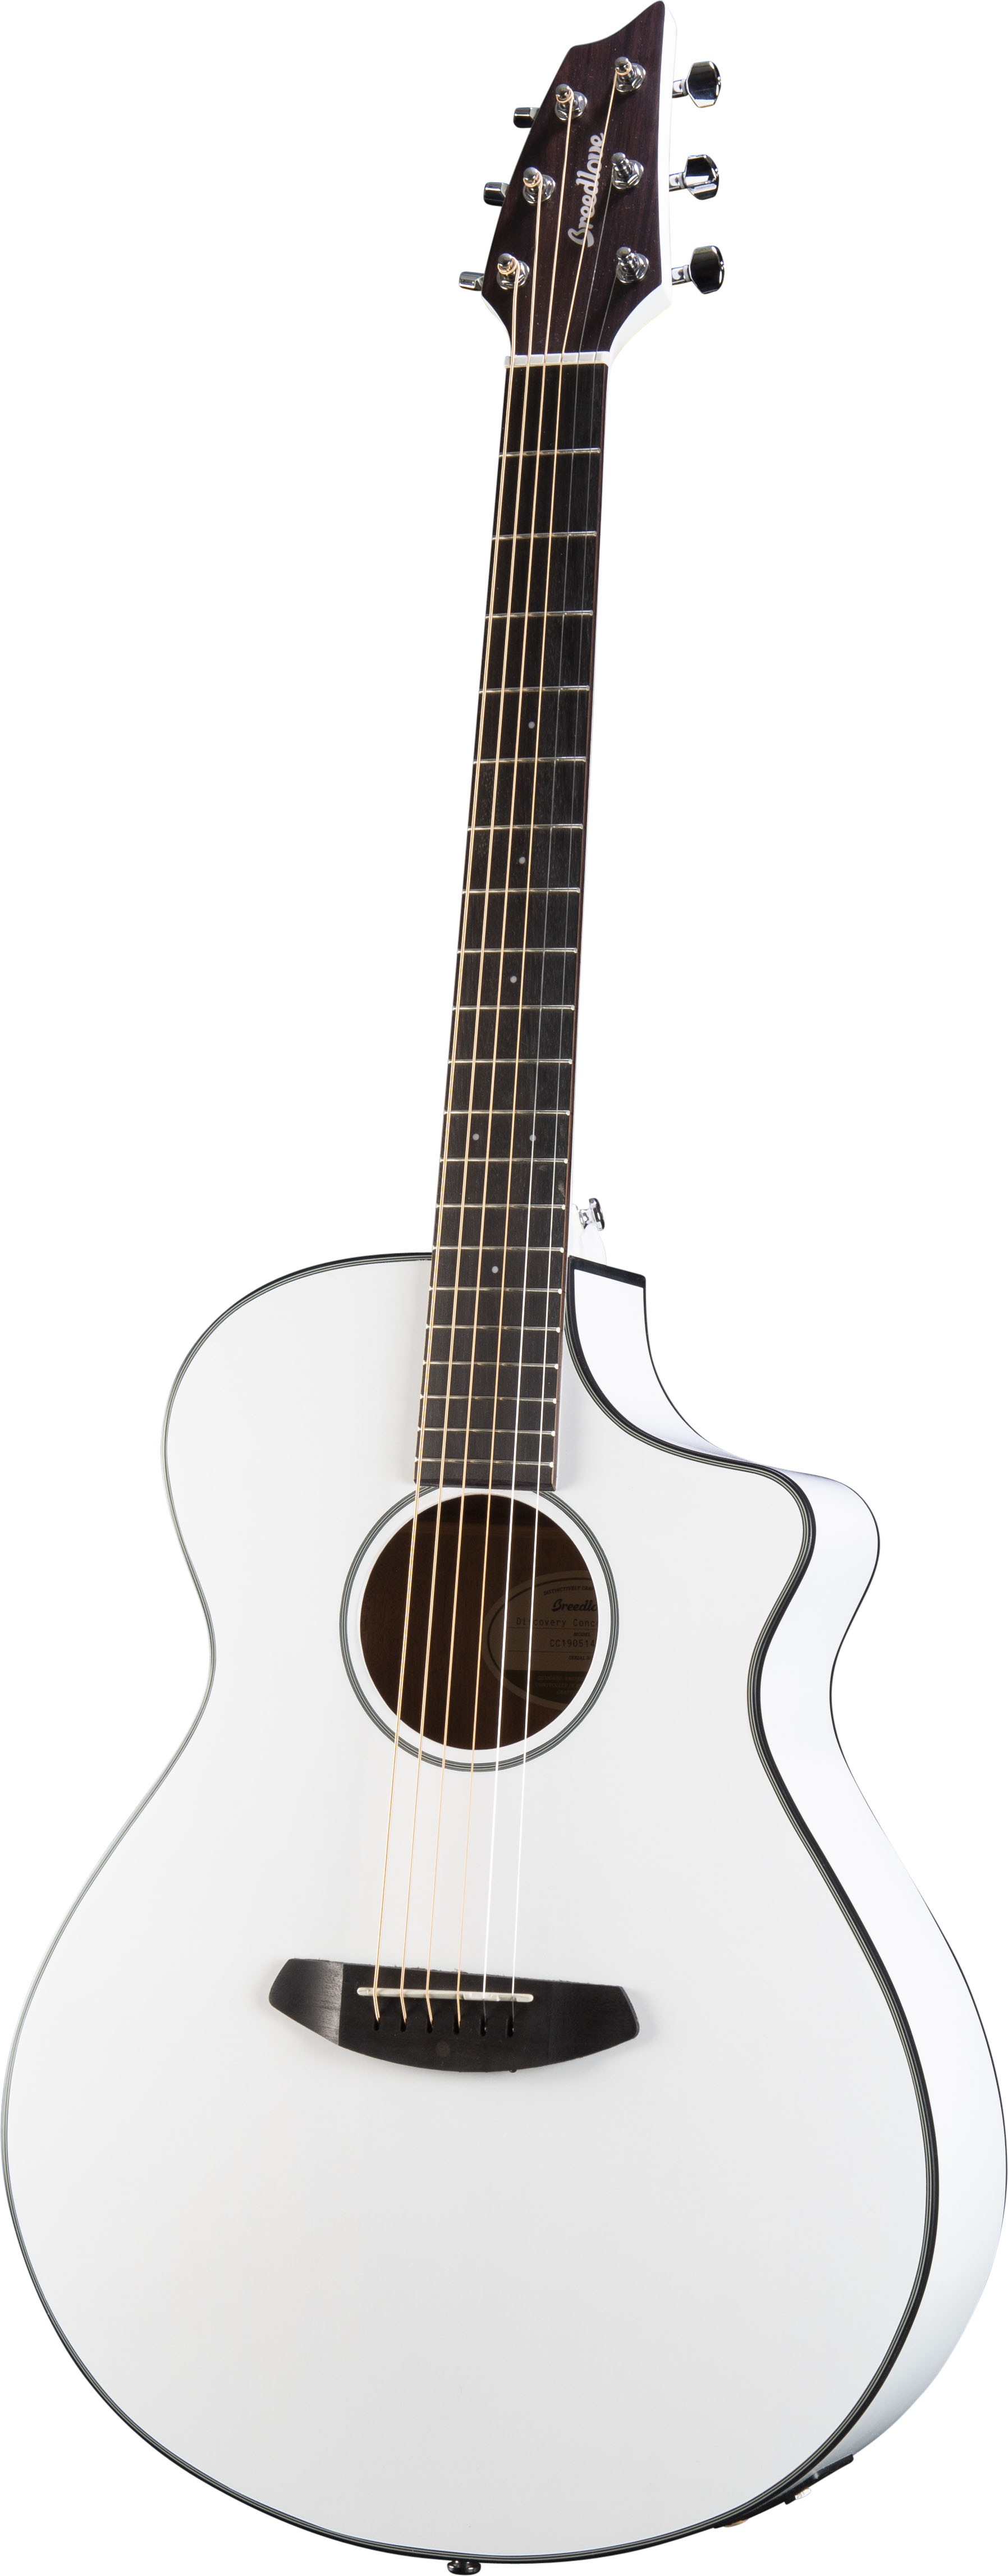 Breedlove Discovery Concert Satin White CE - Limited Edition